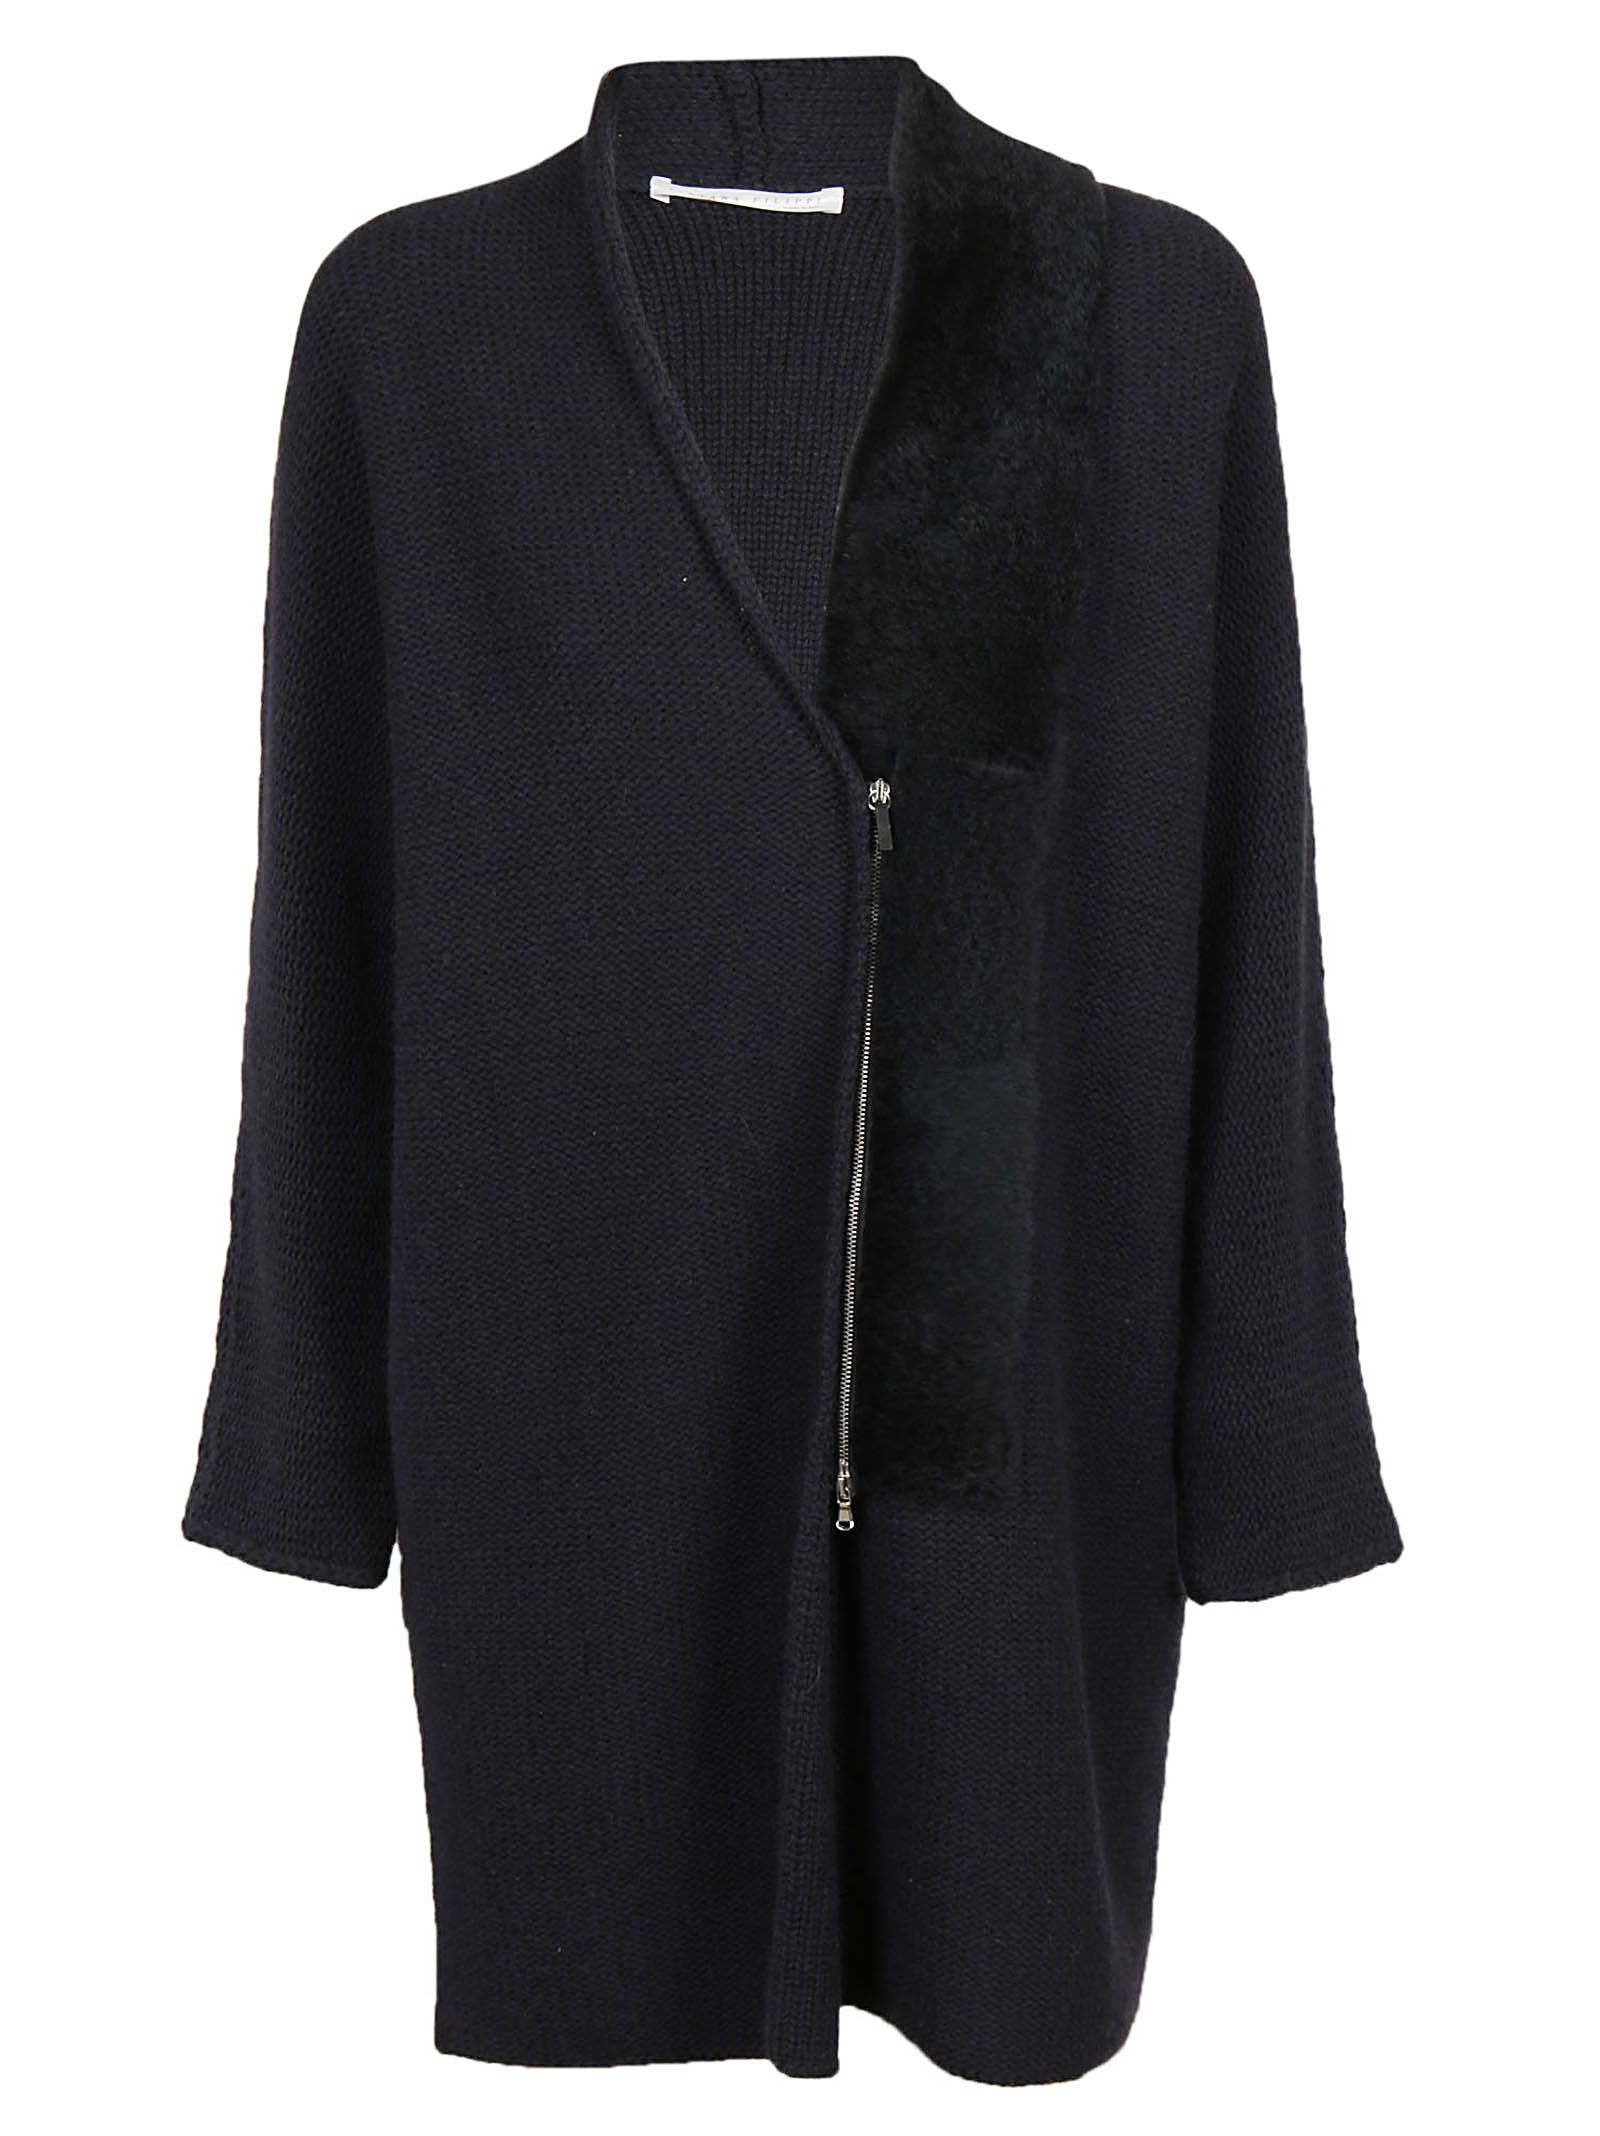 Fabiana Filippi ZIP-UP CARDI-COAT